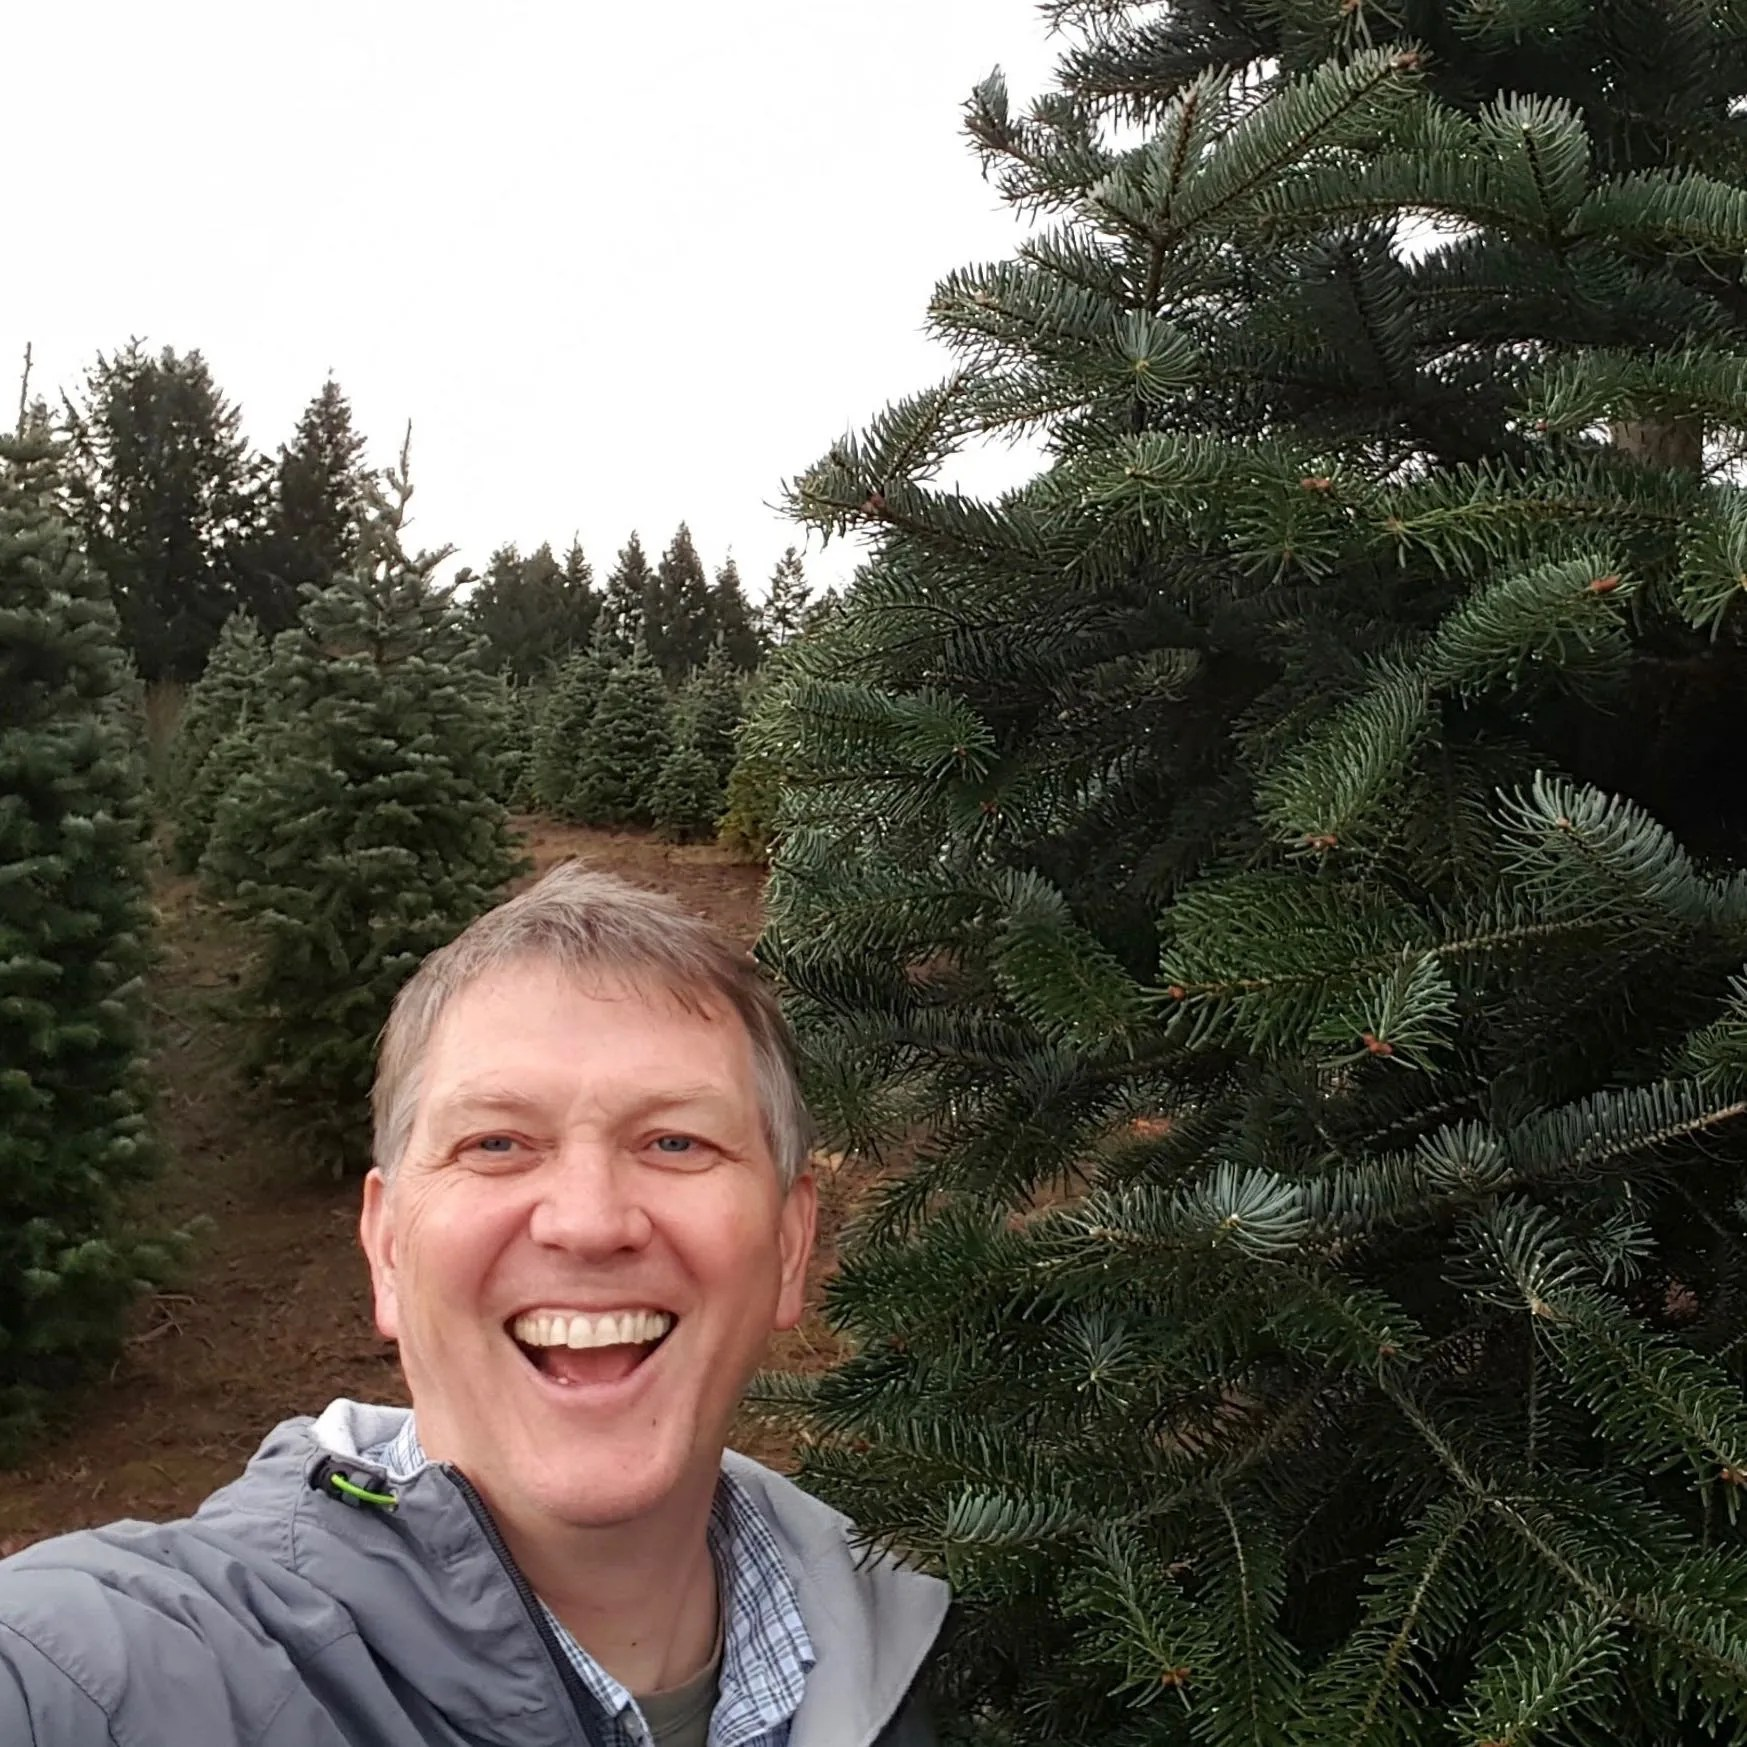 Selfie with a tree